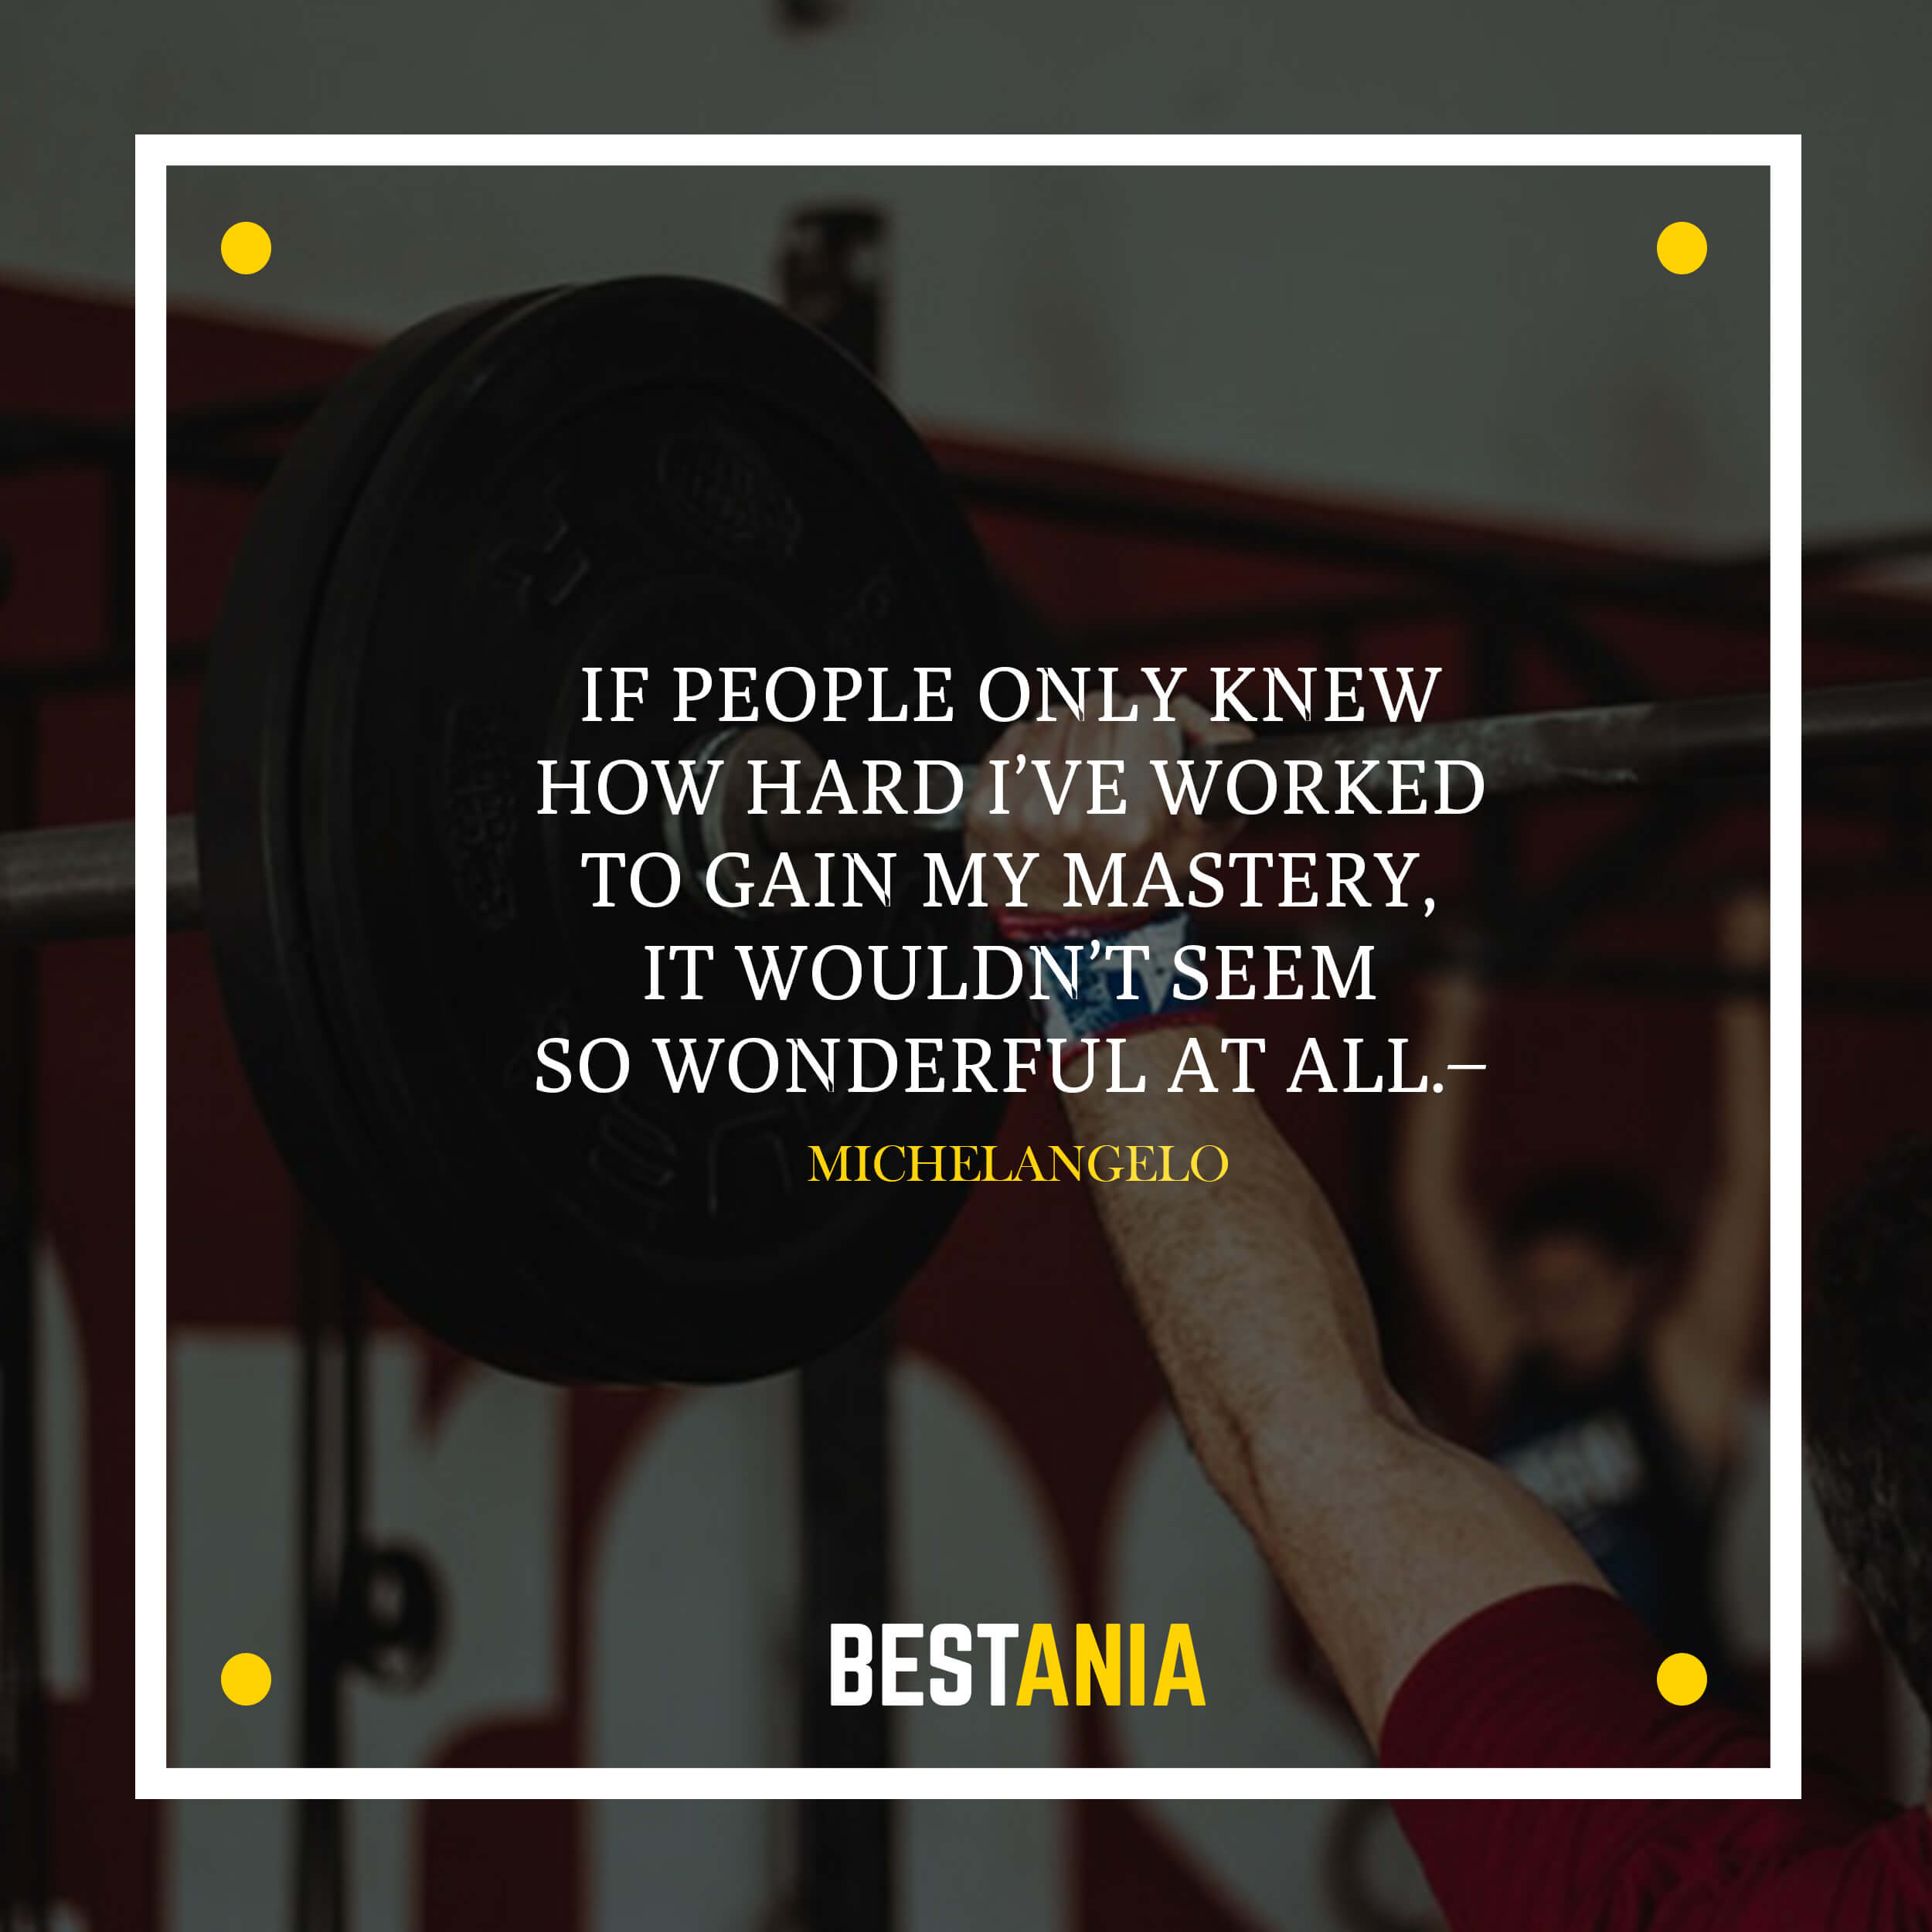 If people only knew how hard I've worked to gain my mastery, it wouldn't seem so wonderful at all.– Michelangelo